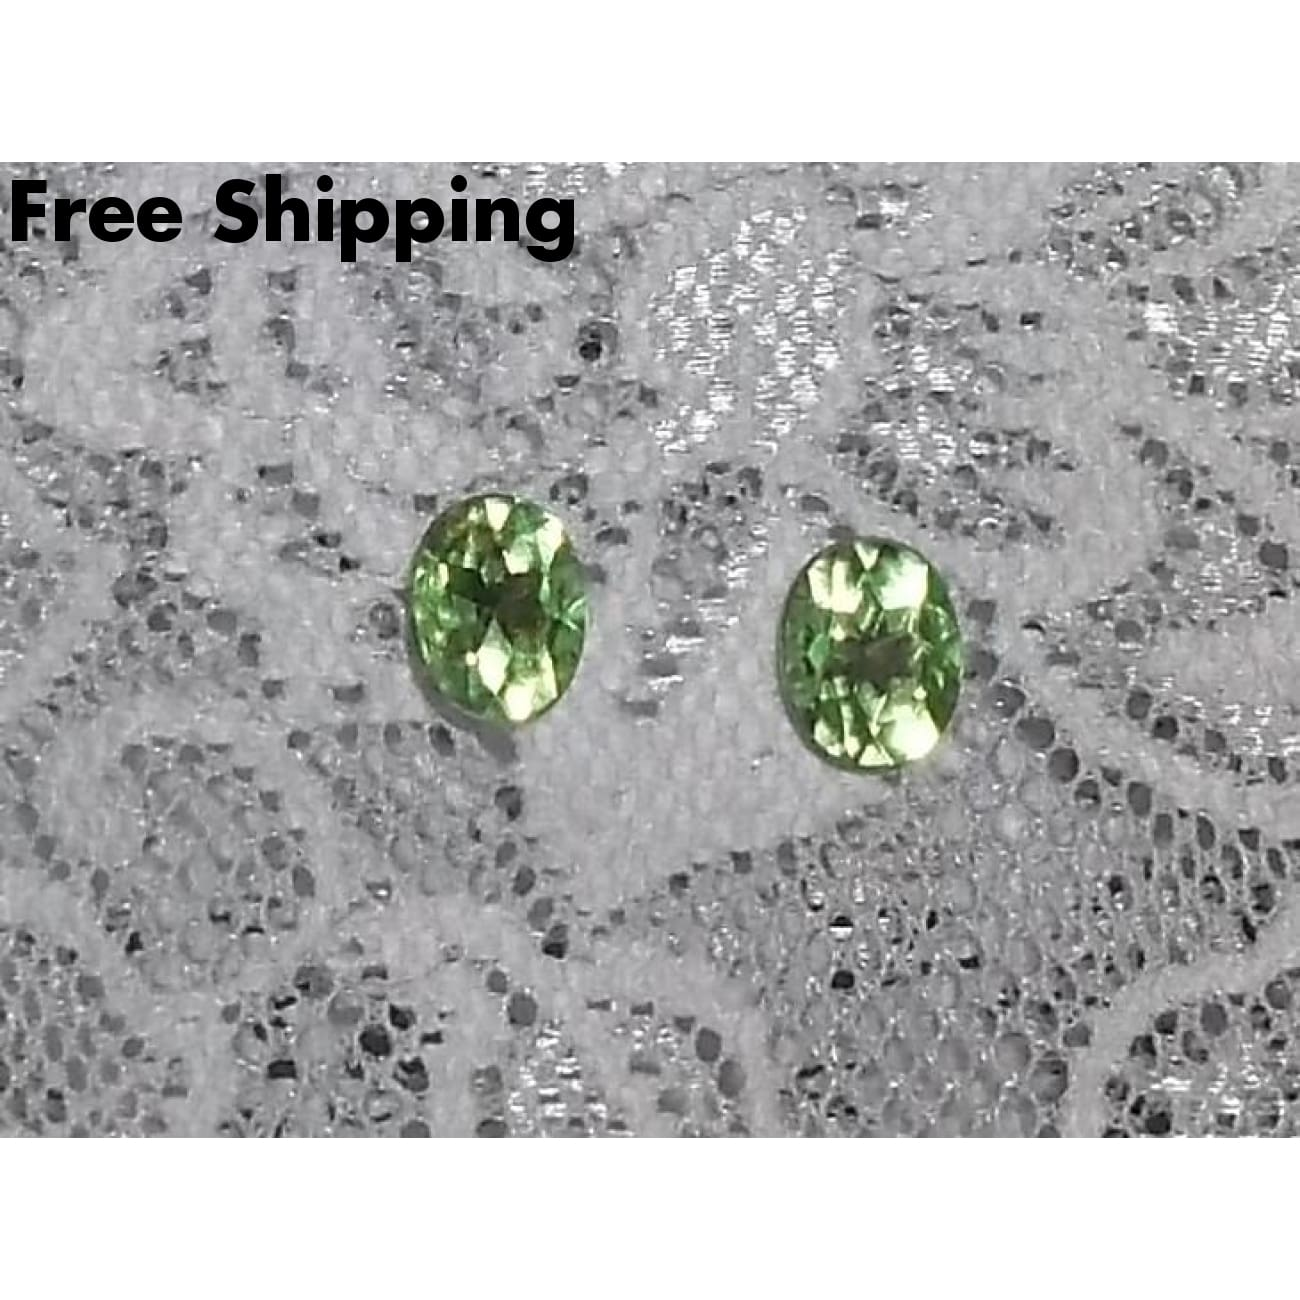 Oval Peridot Green Crystal August Birthstone Silver Tone Stud Post Back Earrings Gift For Her Birthday Gift - Earrings